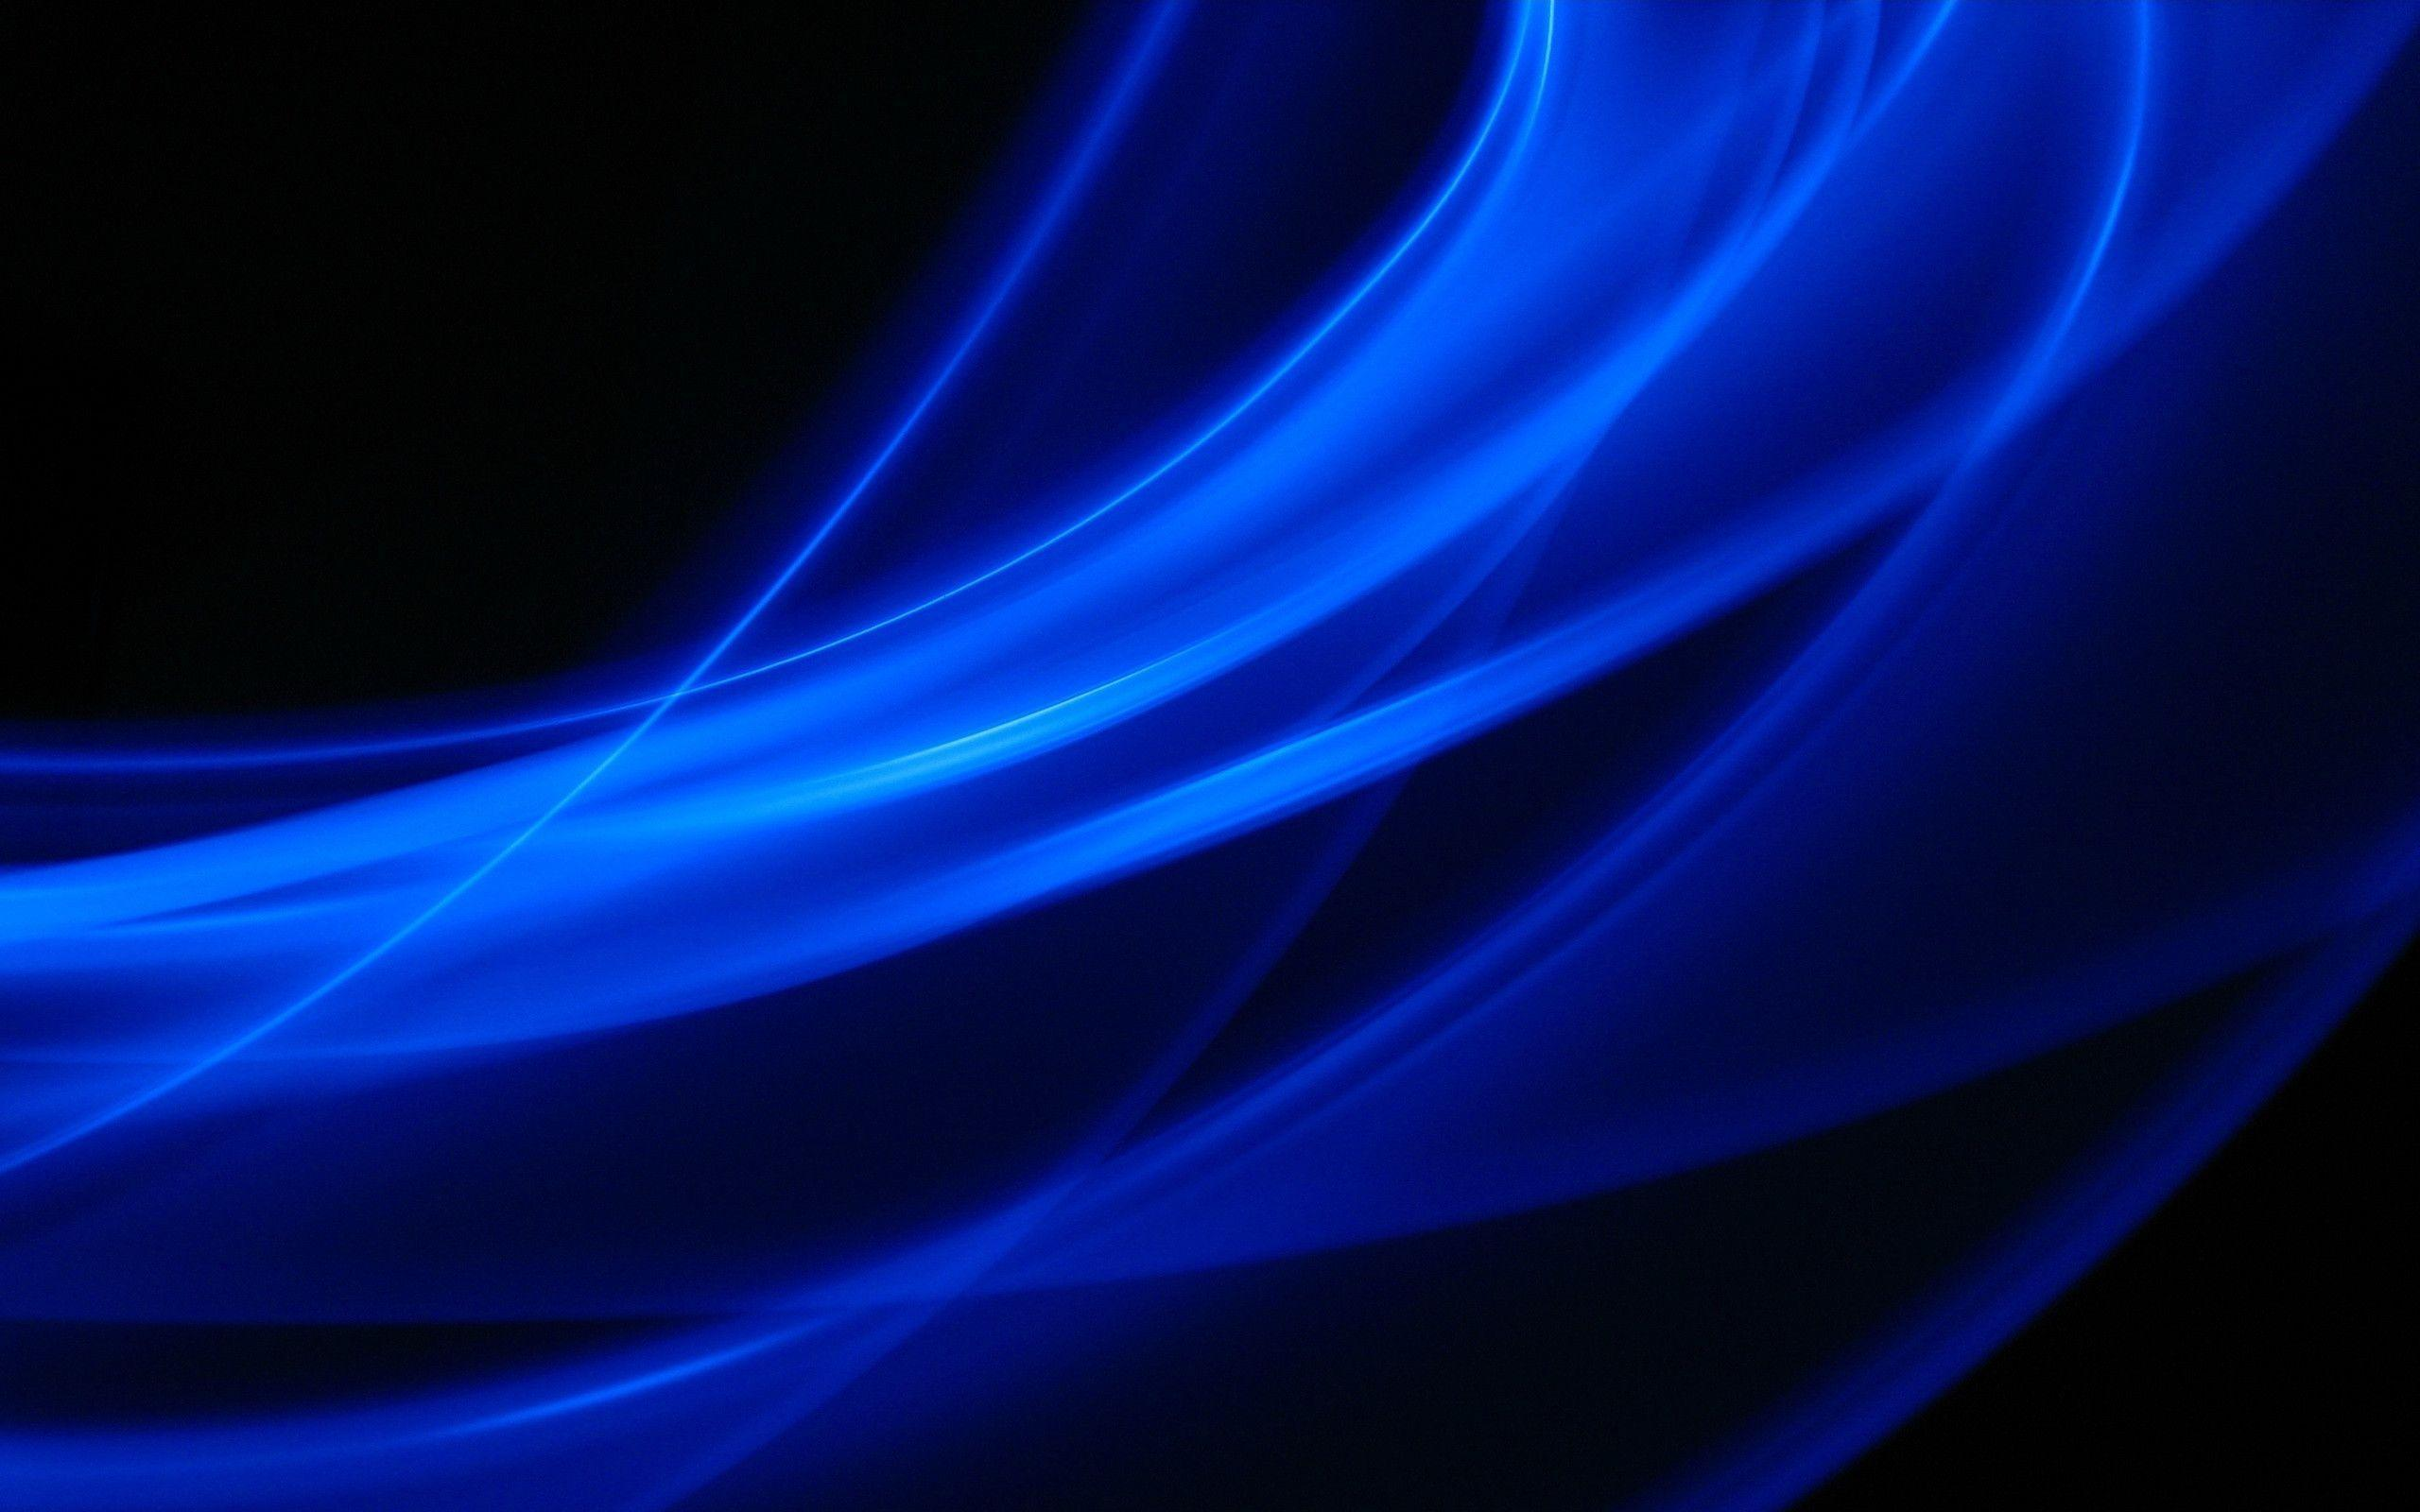 Dark Blue Abstract Wallpapers 2560x1600